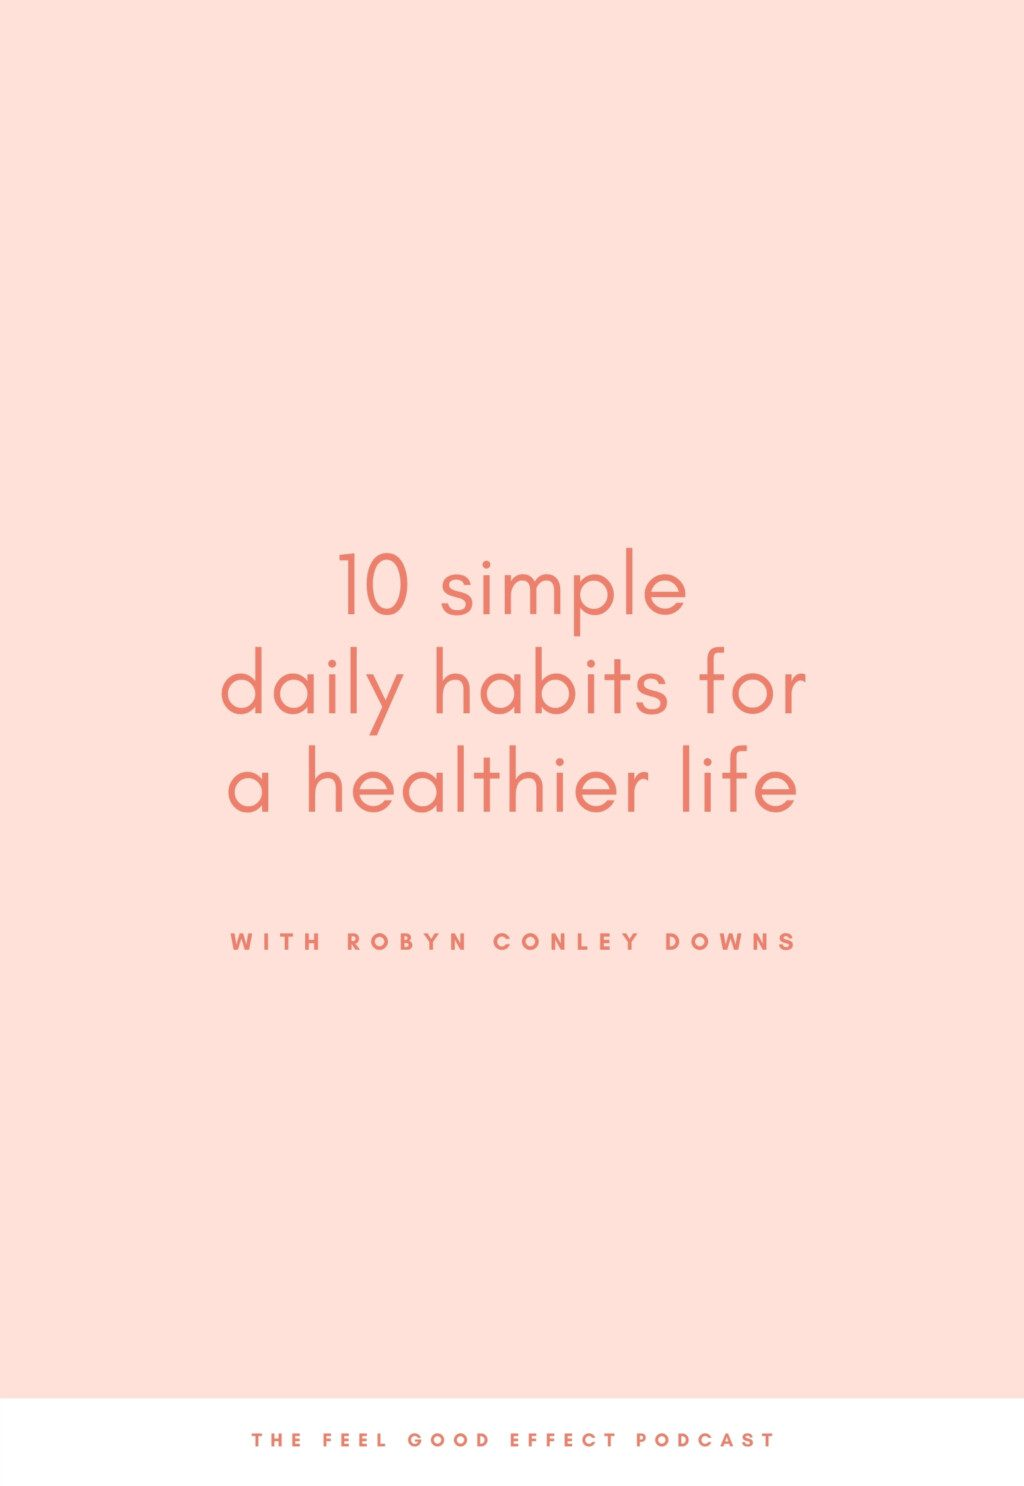 10 simple daily habits for a healthier life